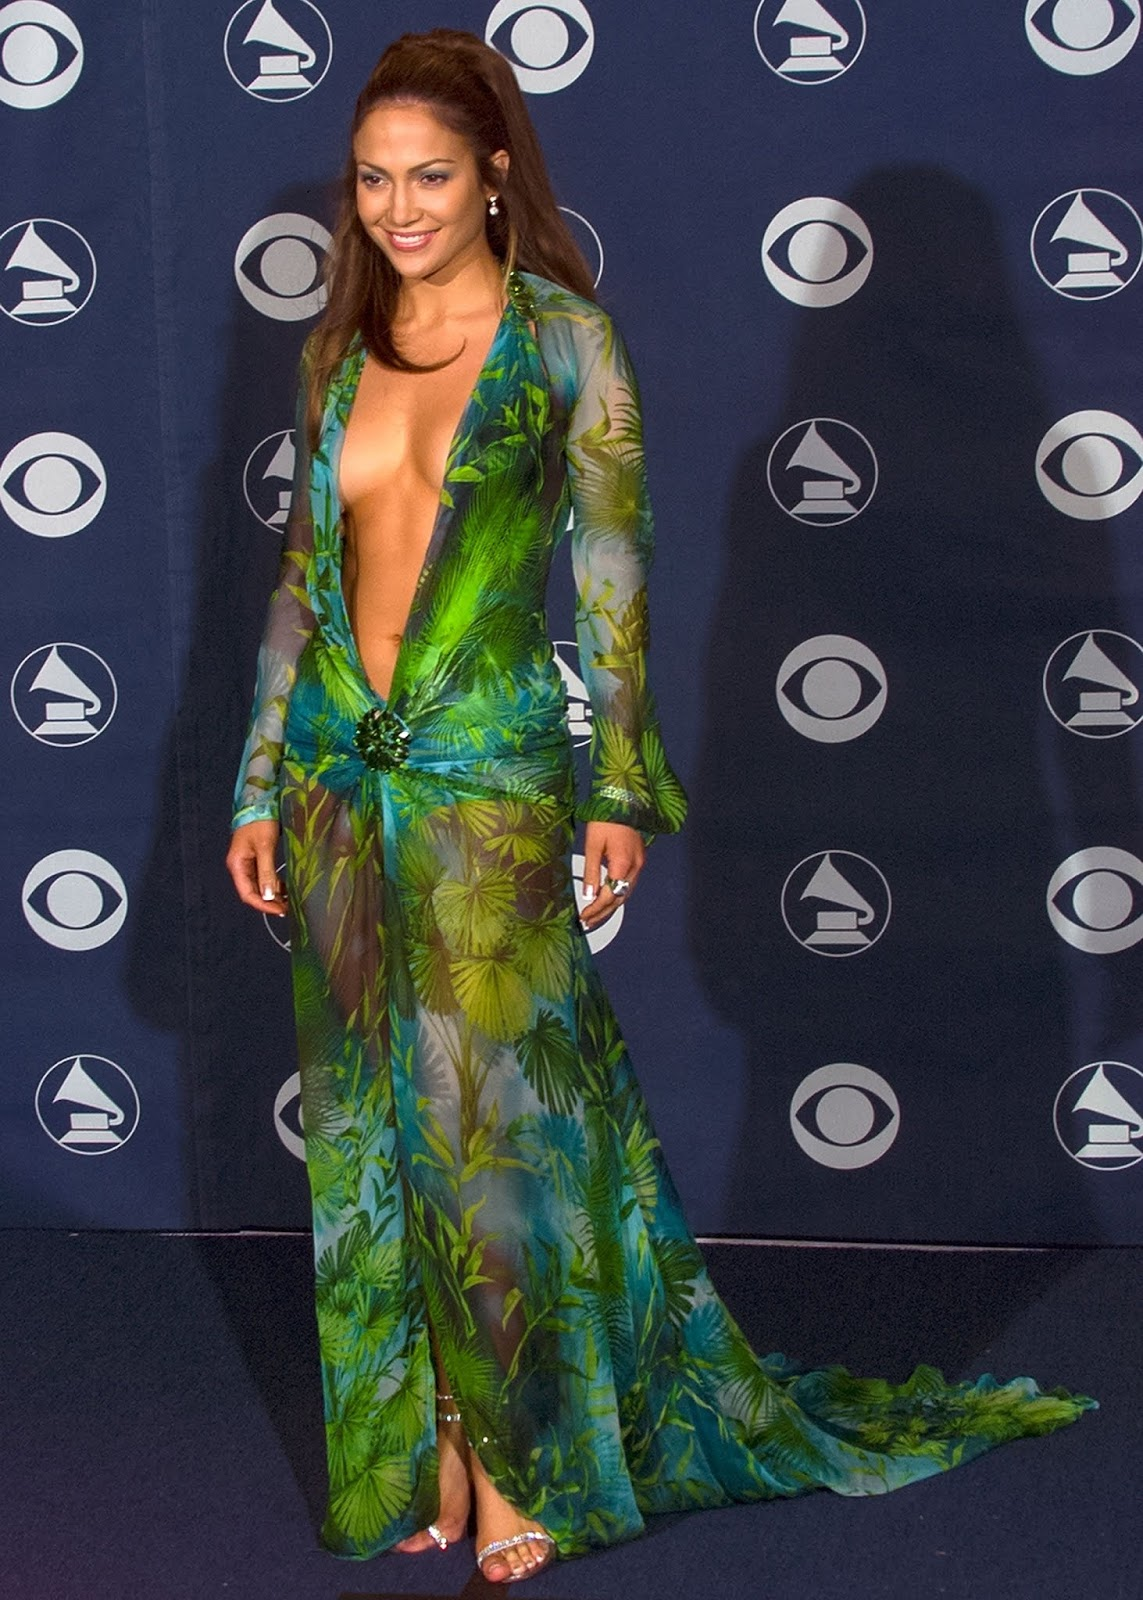 JLo's iconic 2000 Grammy's Versace look which led to the creation of Google Images